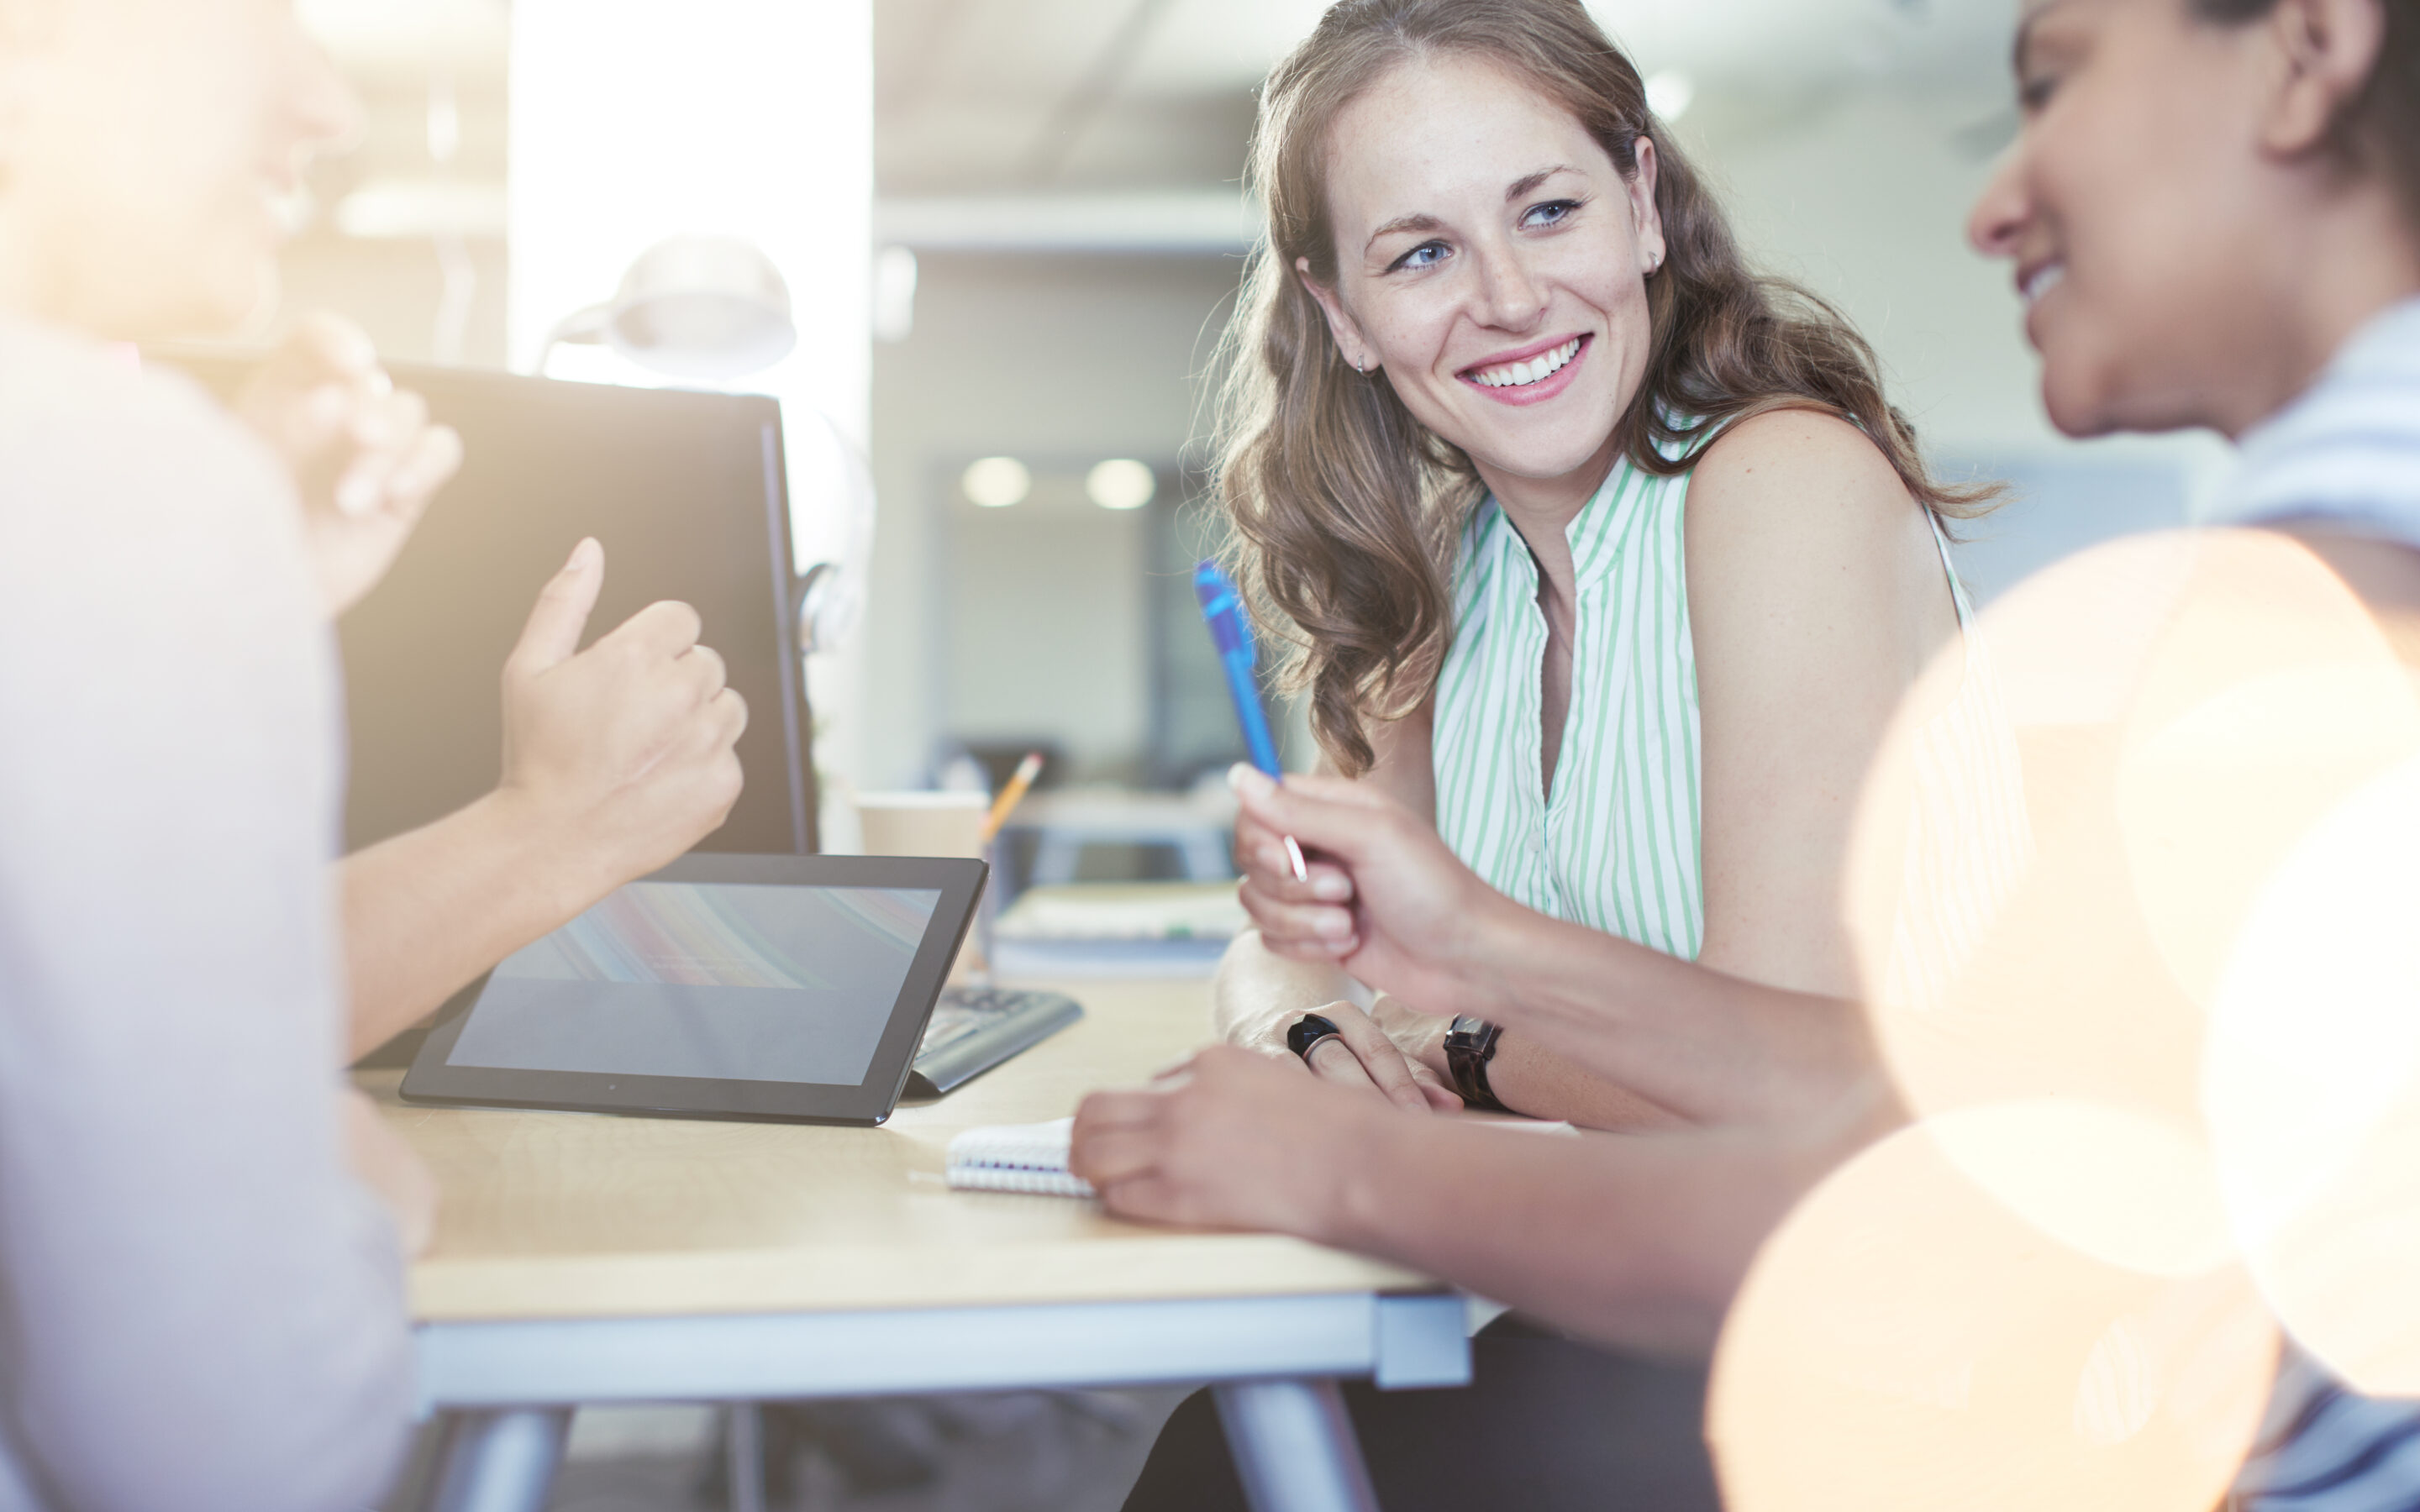 How to be More Collaborative at Work